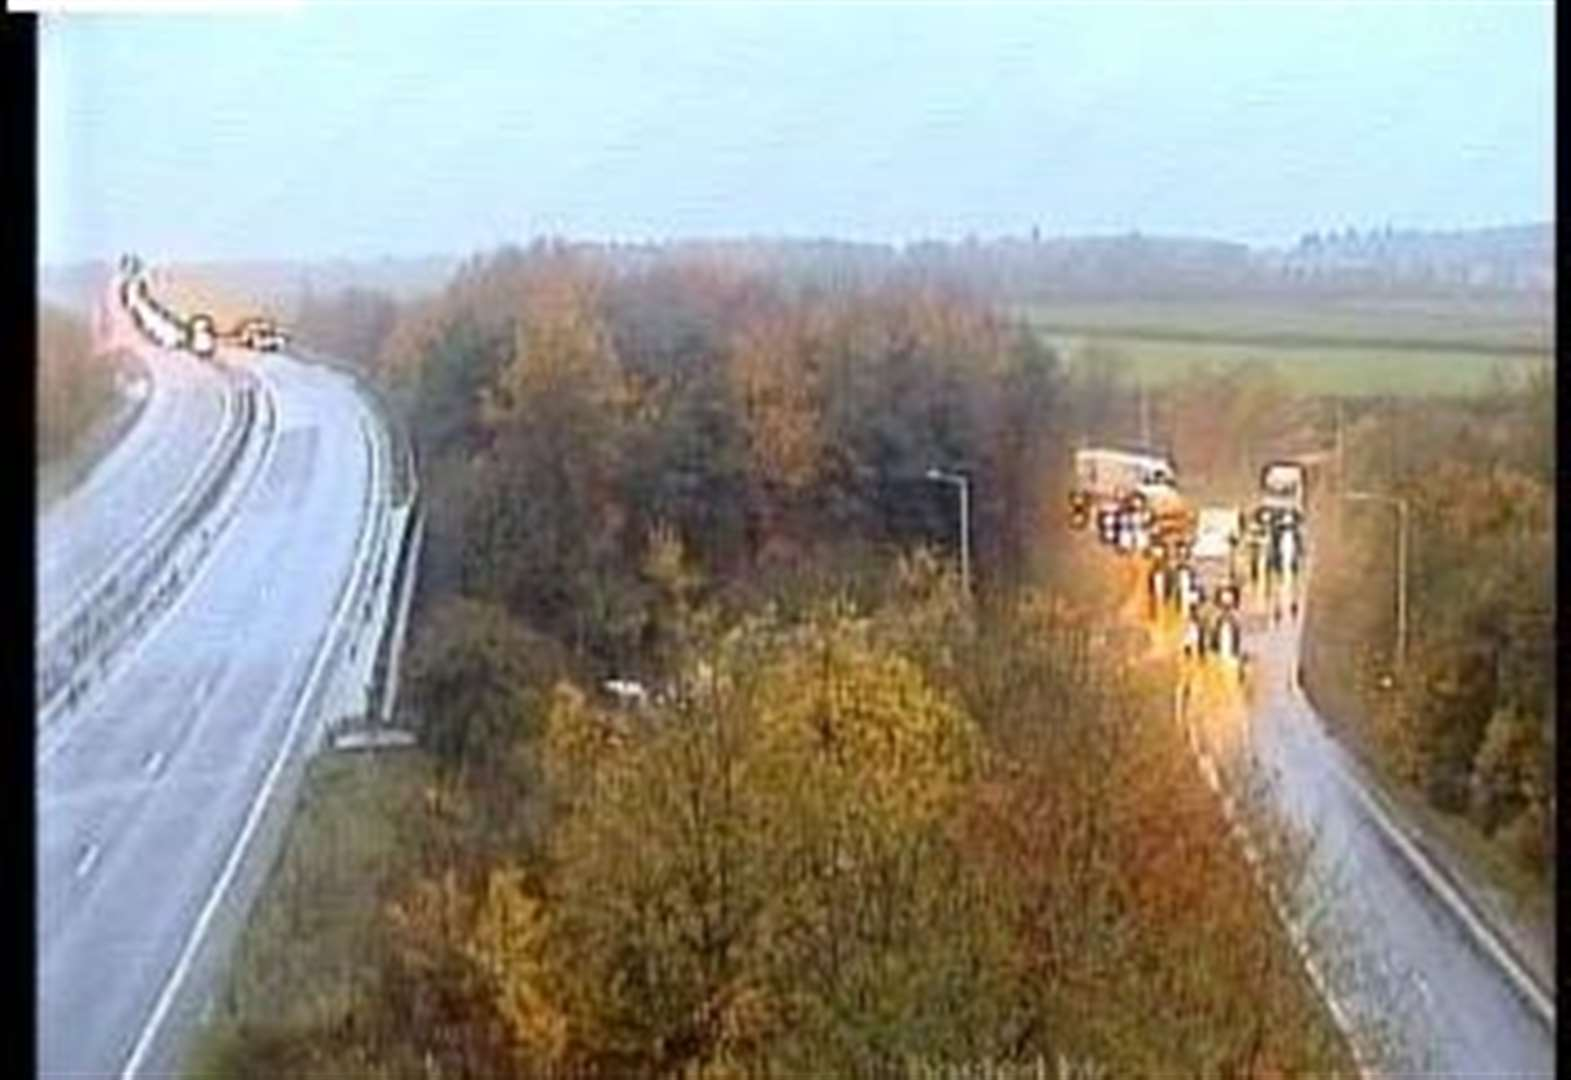 A14 reopens after lorry crash caused traffic chaos for morning commuters